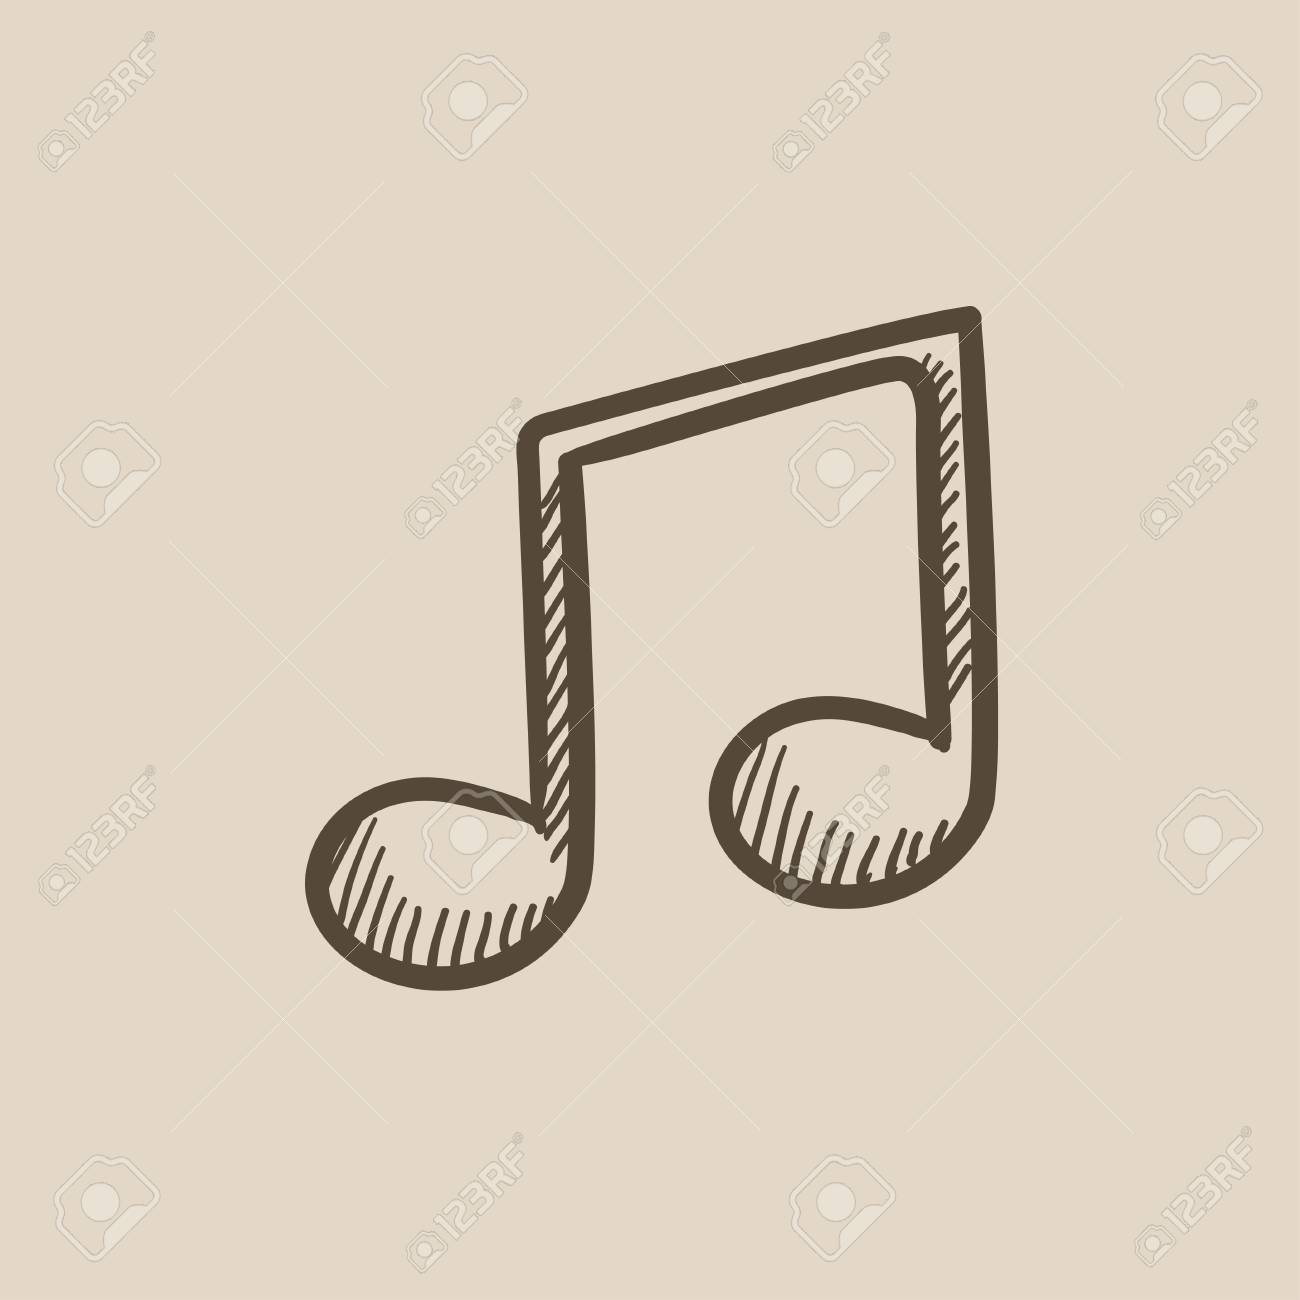 1300x1300 Music Note Vector Sketch Icon Isolated On Background. Hand Drawn